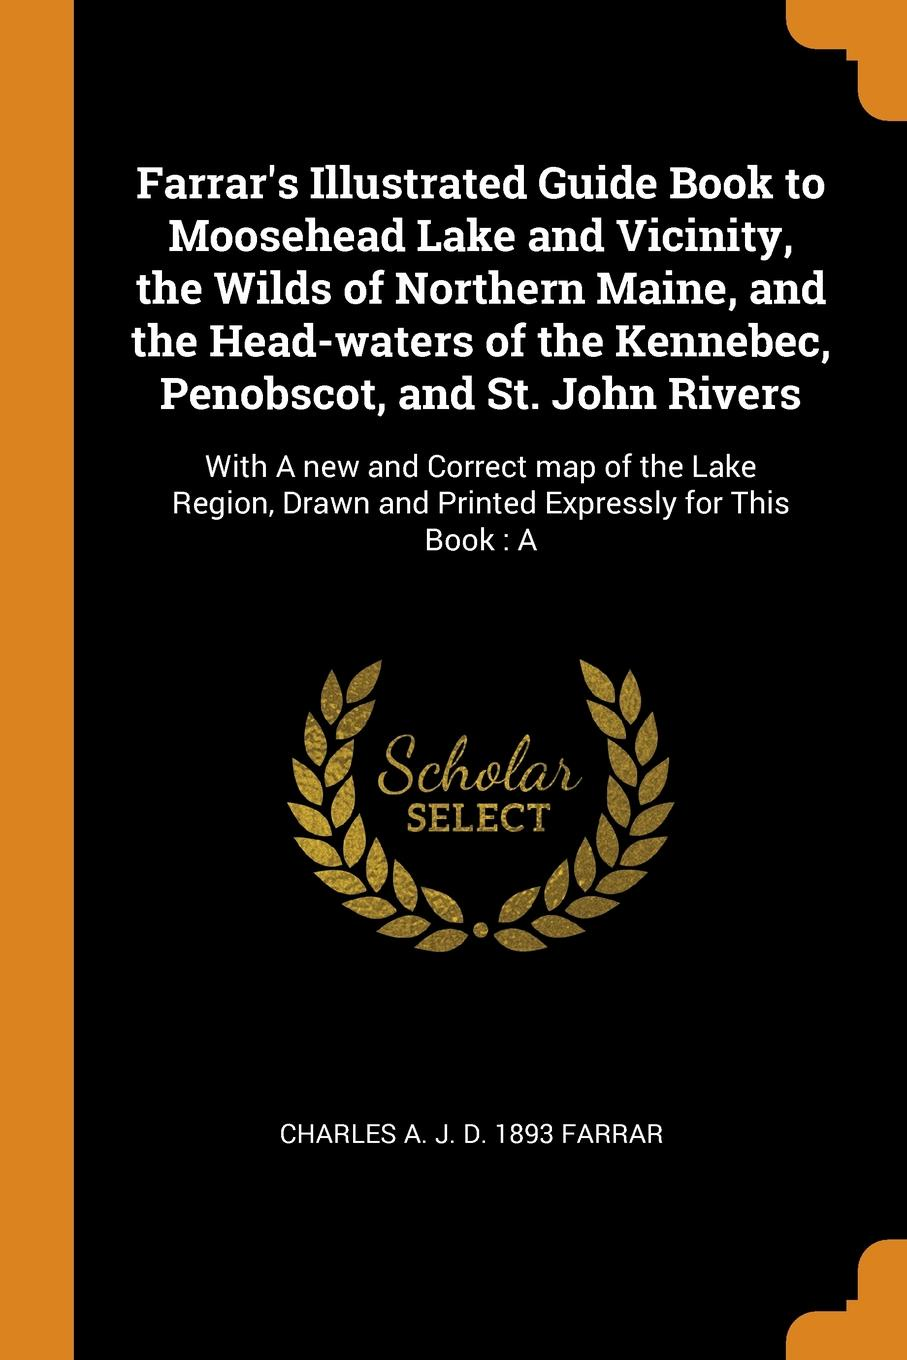 Charles A. J. d. 1893 Farrar Farrar's Illustrated Guide Book to Moosehead Lake and Vicinity, the Wilds of Northern Maine, and the Head-waters of the Kennebec, Penobscot, and St. John Rivers. With A new and Correct map of the Lake Region, Drawn and Printed Expressly for This B... felix j palma the map of time and the turn of the screw